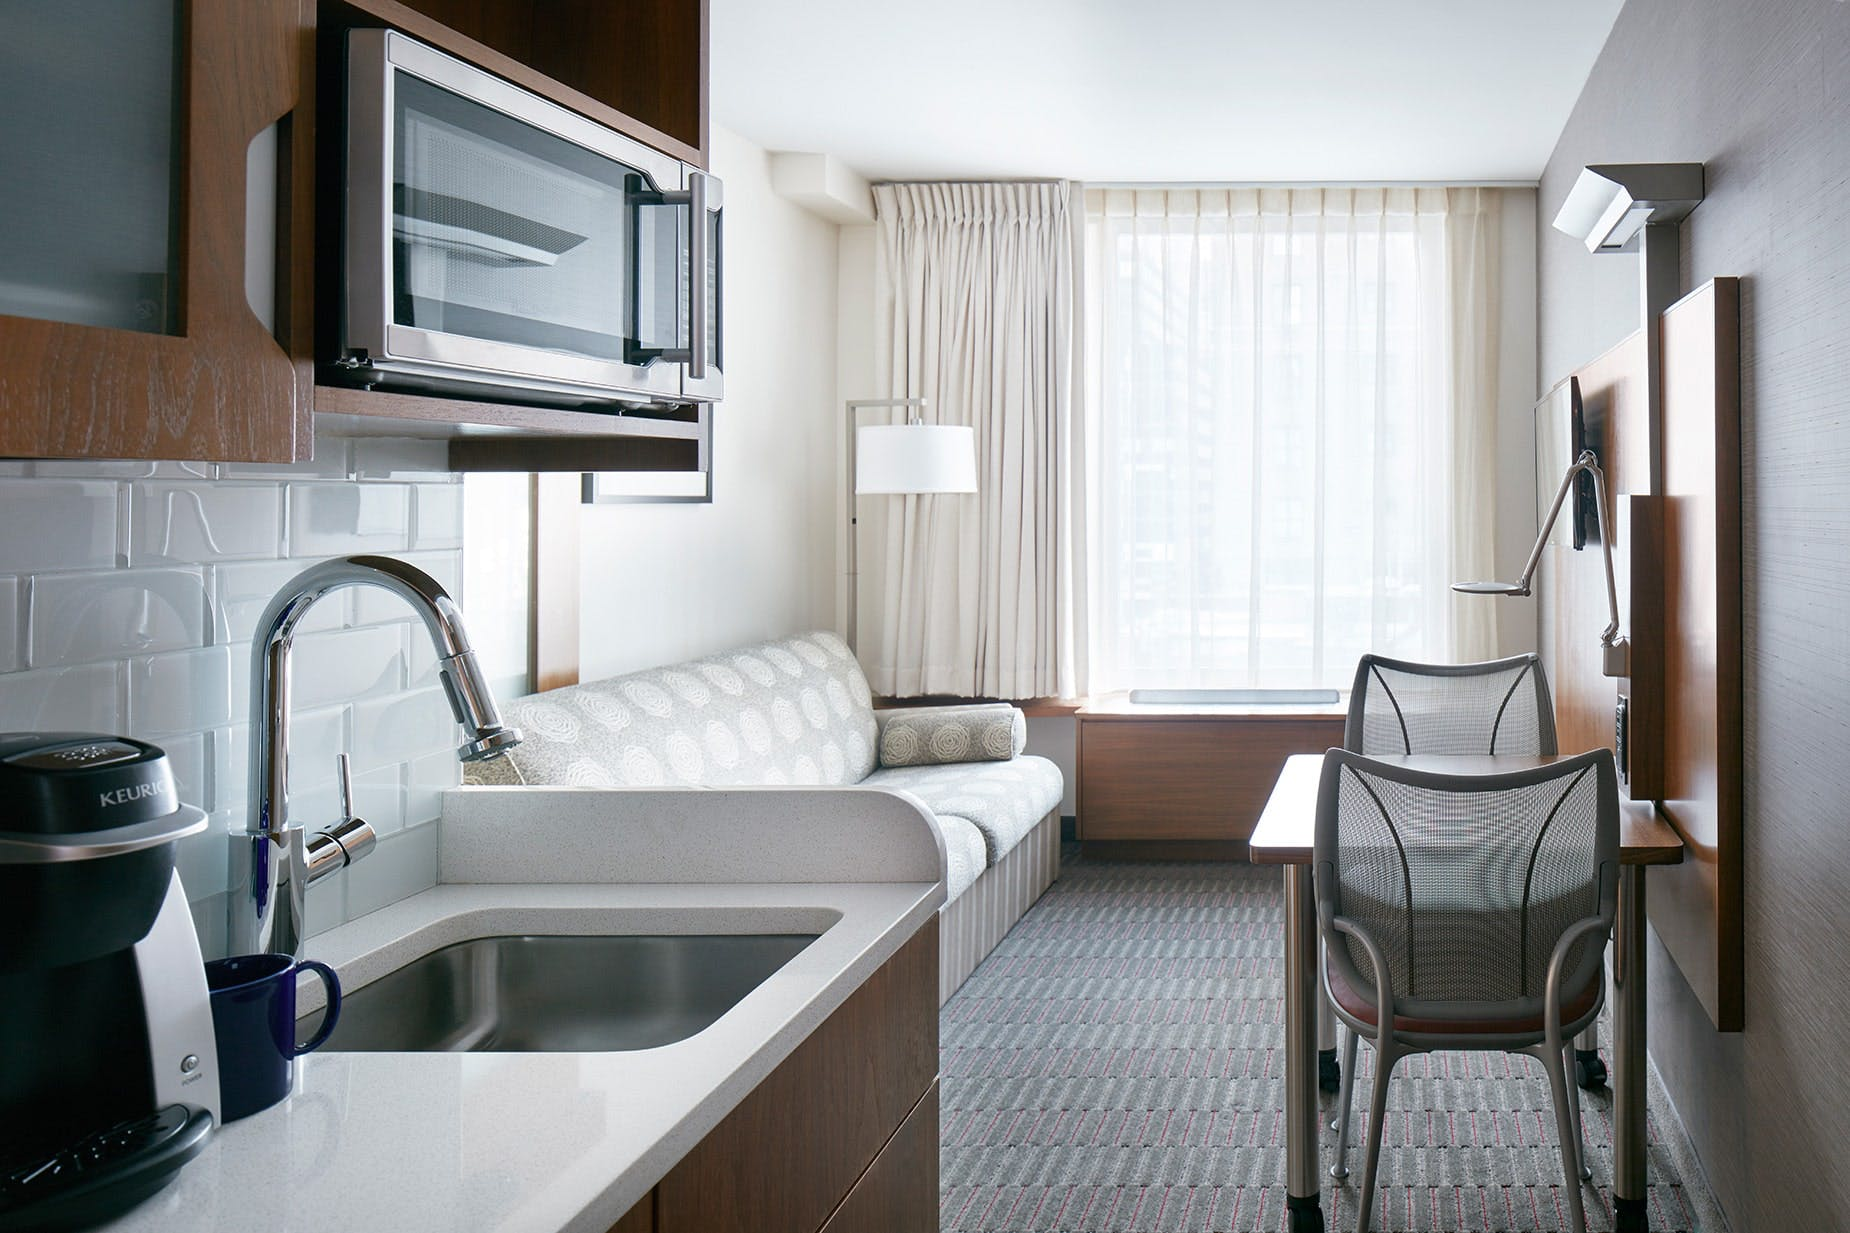 One Room Suite with Kitchenette, Club Quarters Hotel, Grand Central, NYC